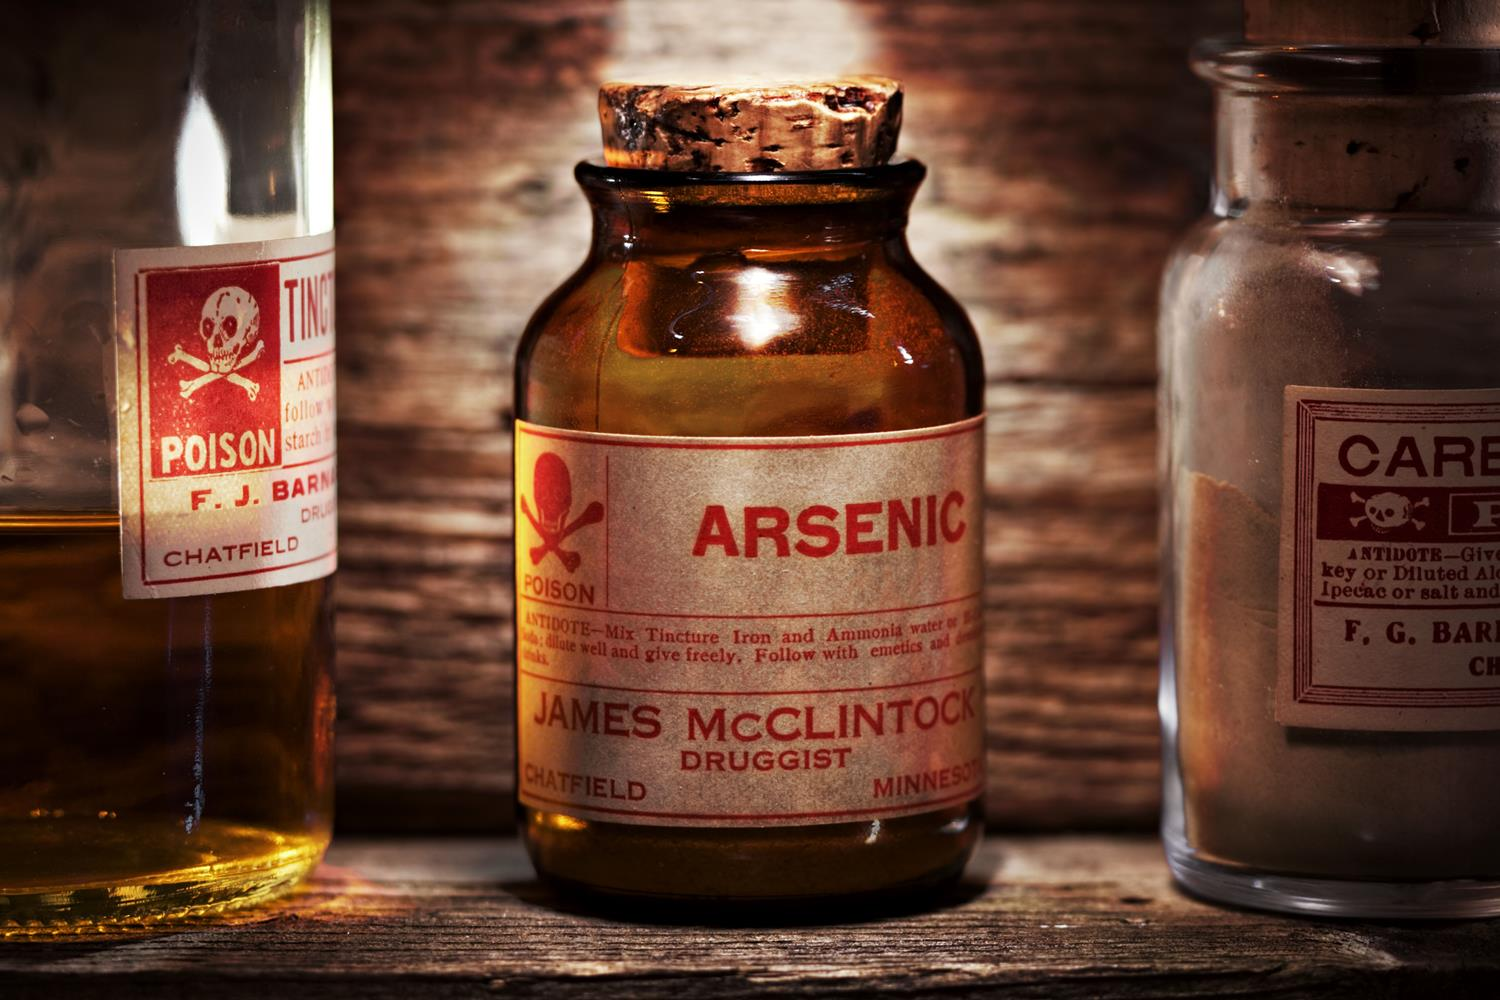 Shocking Study Shows Glyphosate Herbicides Contain Toxic Levels of Arsenic - Sustainable Pulse